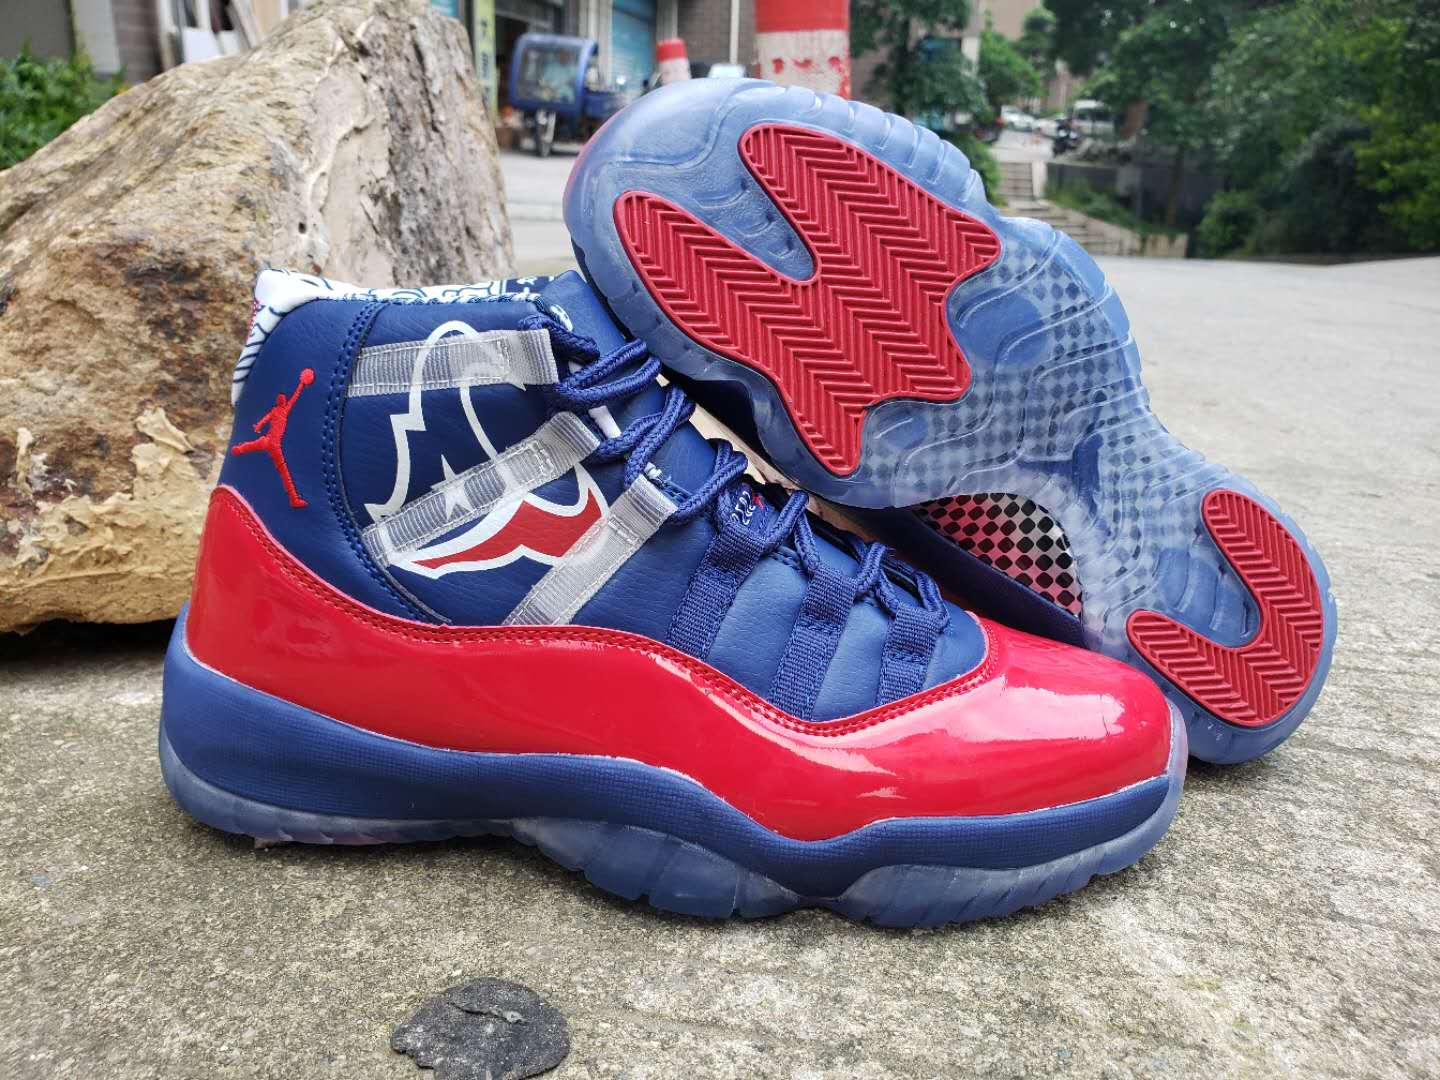 New Air Jordan 11 Championship Blue Red Shoes